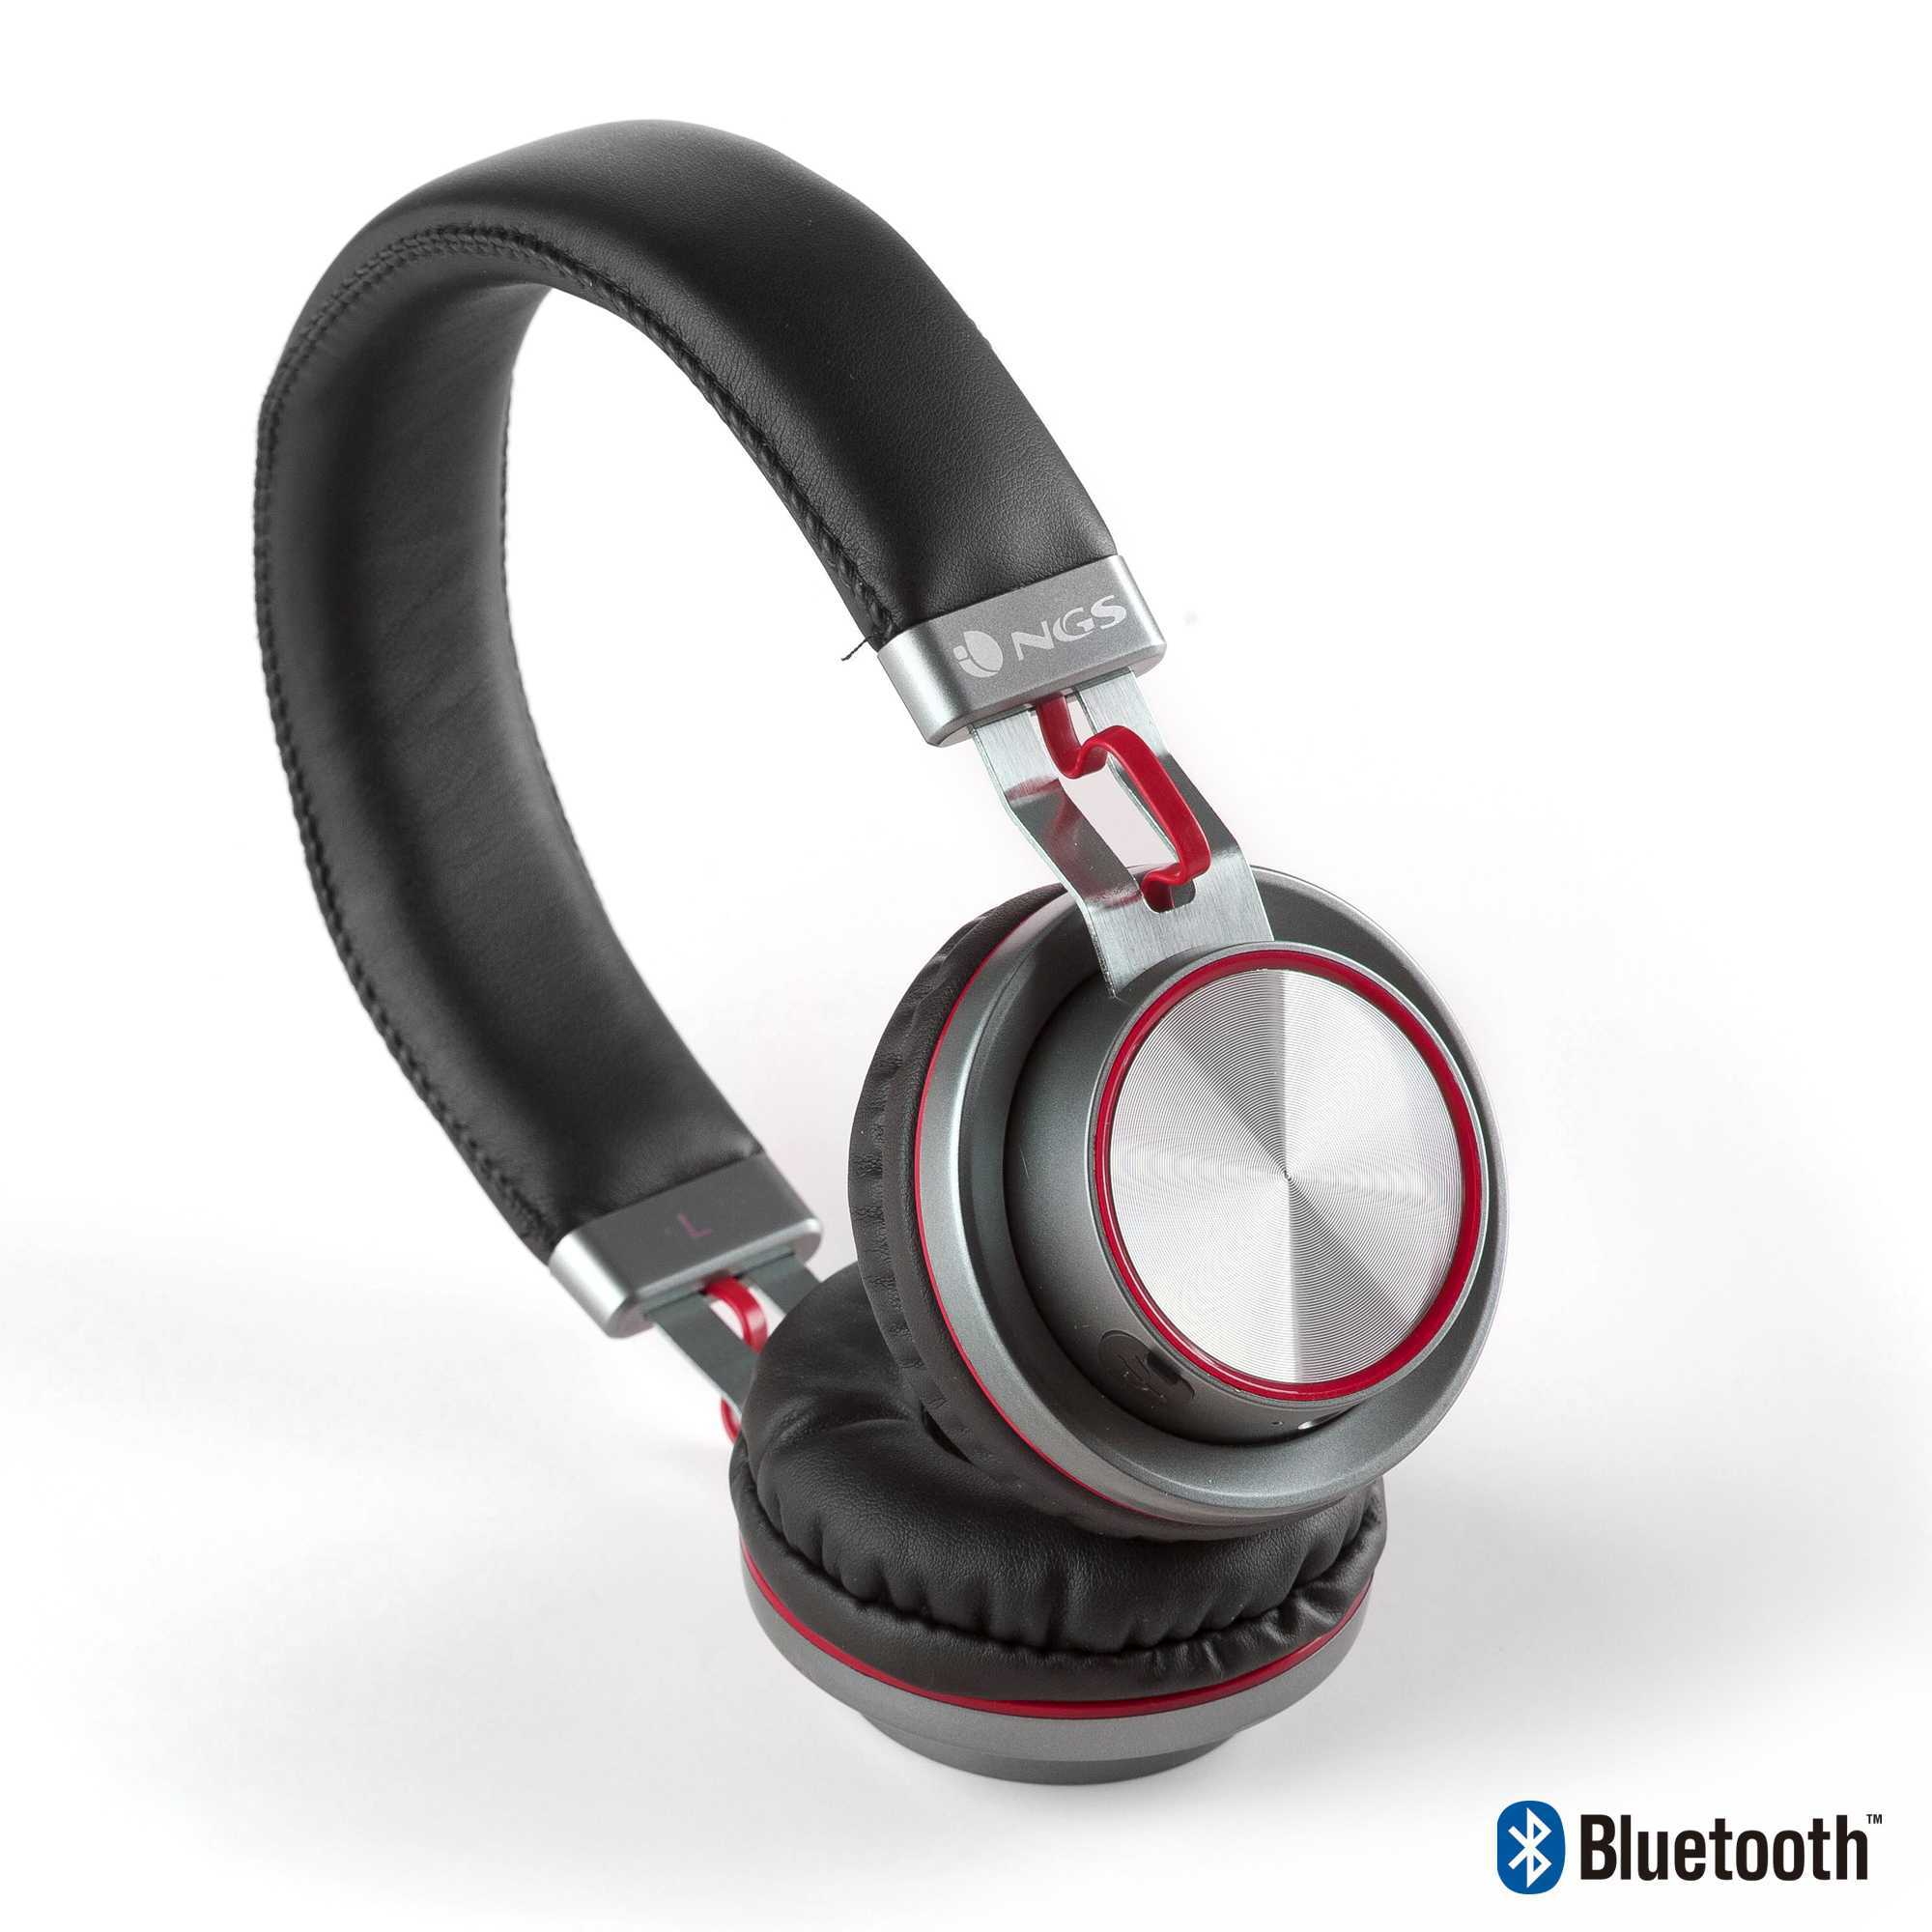 casque audio artica patrol bluetooth avec micro metal rouge noriak. Black Bedroom Furniture Sets. Home Design Ideas